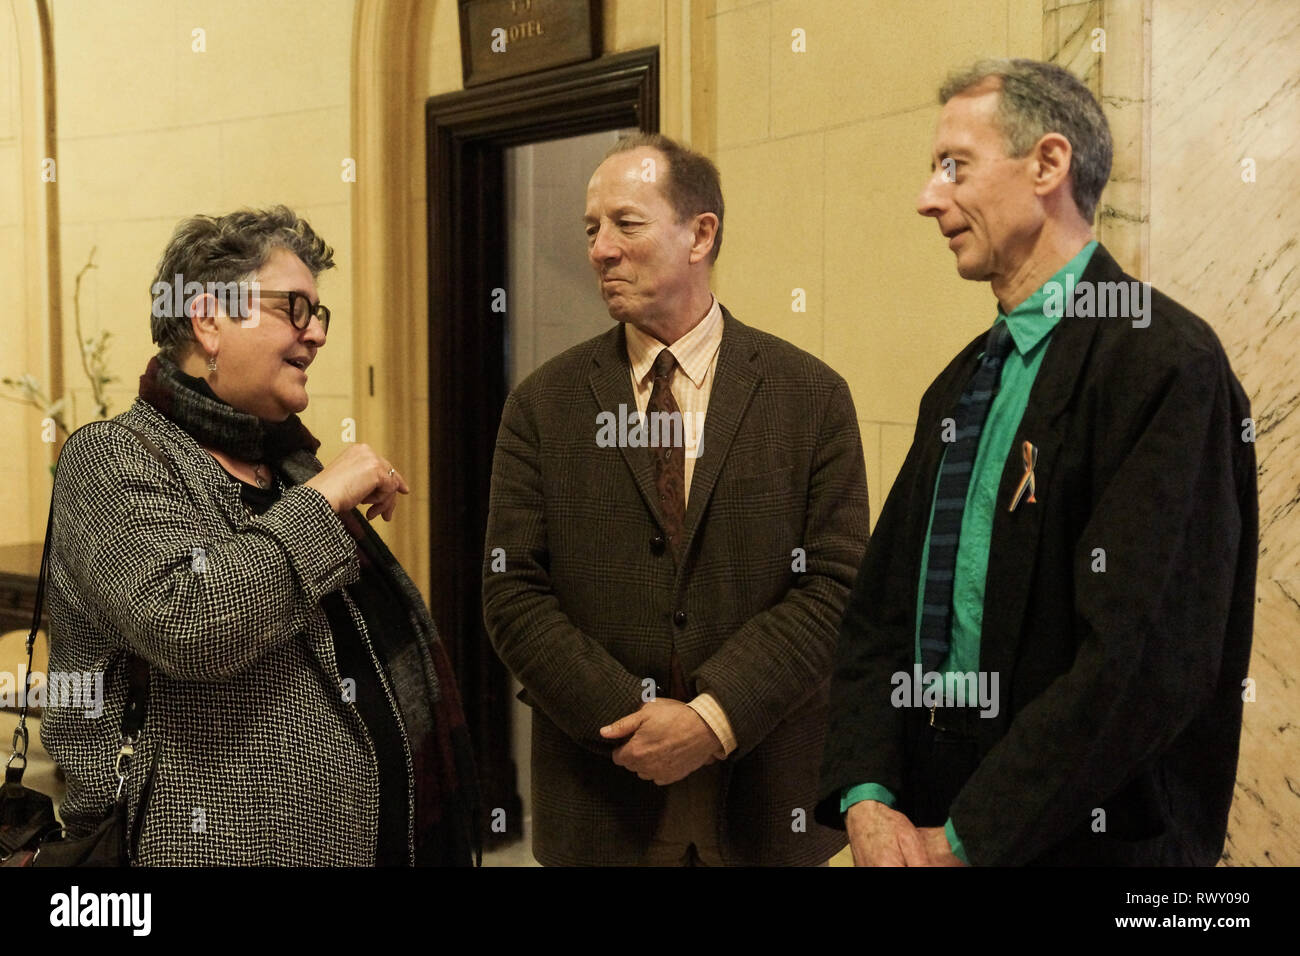 London, UK. 07th Mar, 2019. Baroness Liz Barker, Rupert Morriss, Peter Tatchell.Nicholas Parsons, actor and host of long-running Just a Minute, Peter Tatchell, human rights activist, and Valerie Brandes, founder and publisher of Jacaranda Books accept Honorary Membership of the National Liberal Club at a luncheon hosted by NLC Chairman, Rupert Morriss. Credit: Peter Hogan/Alamy Live News - Stock Image